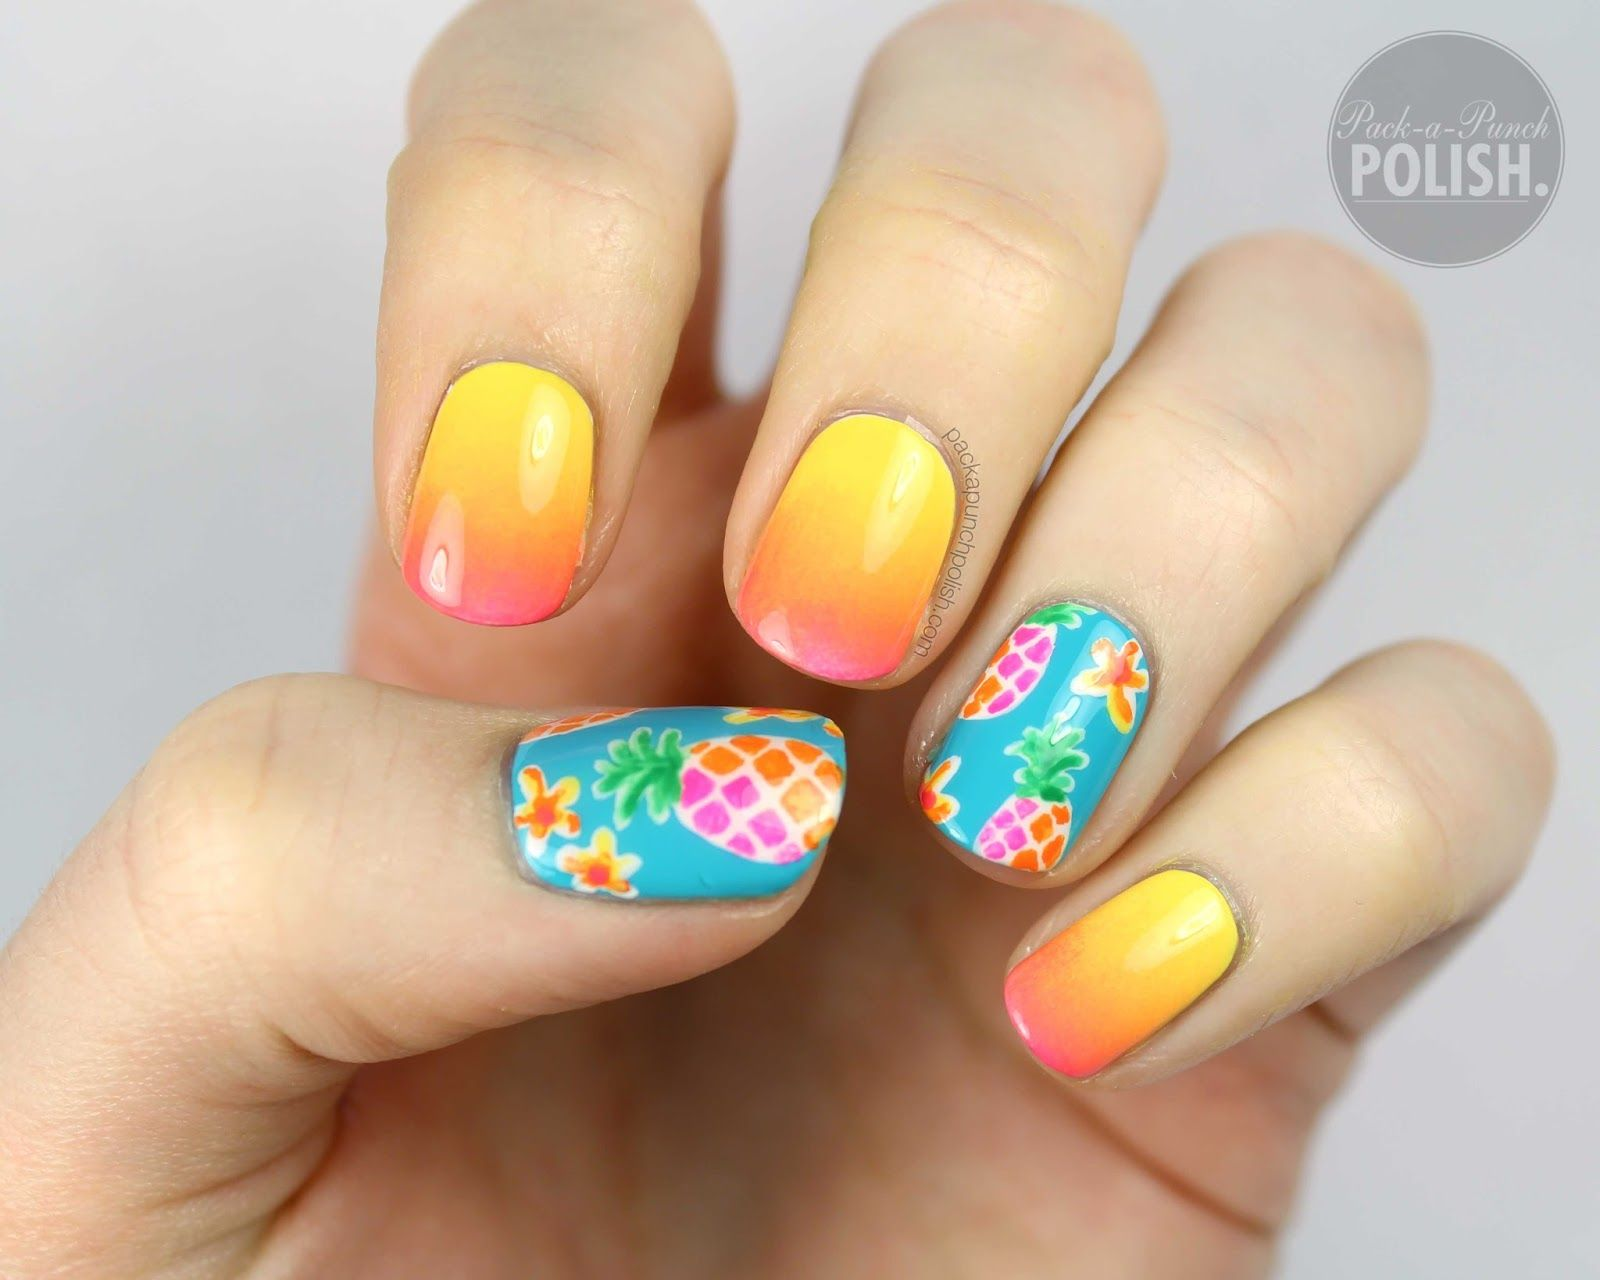 05 pineapple and ombre nail art summer nails pinterest ombre packapunchpolish pineapple and ombre nail art with video tutorial prinsesfo Image collections